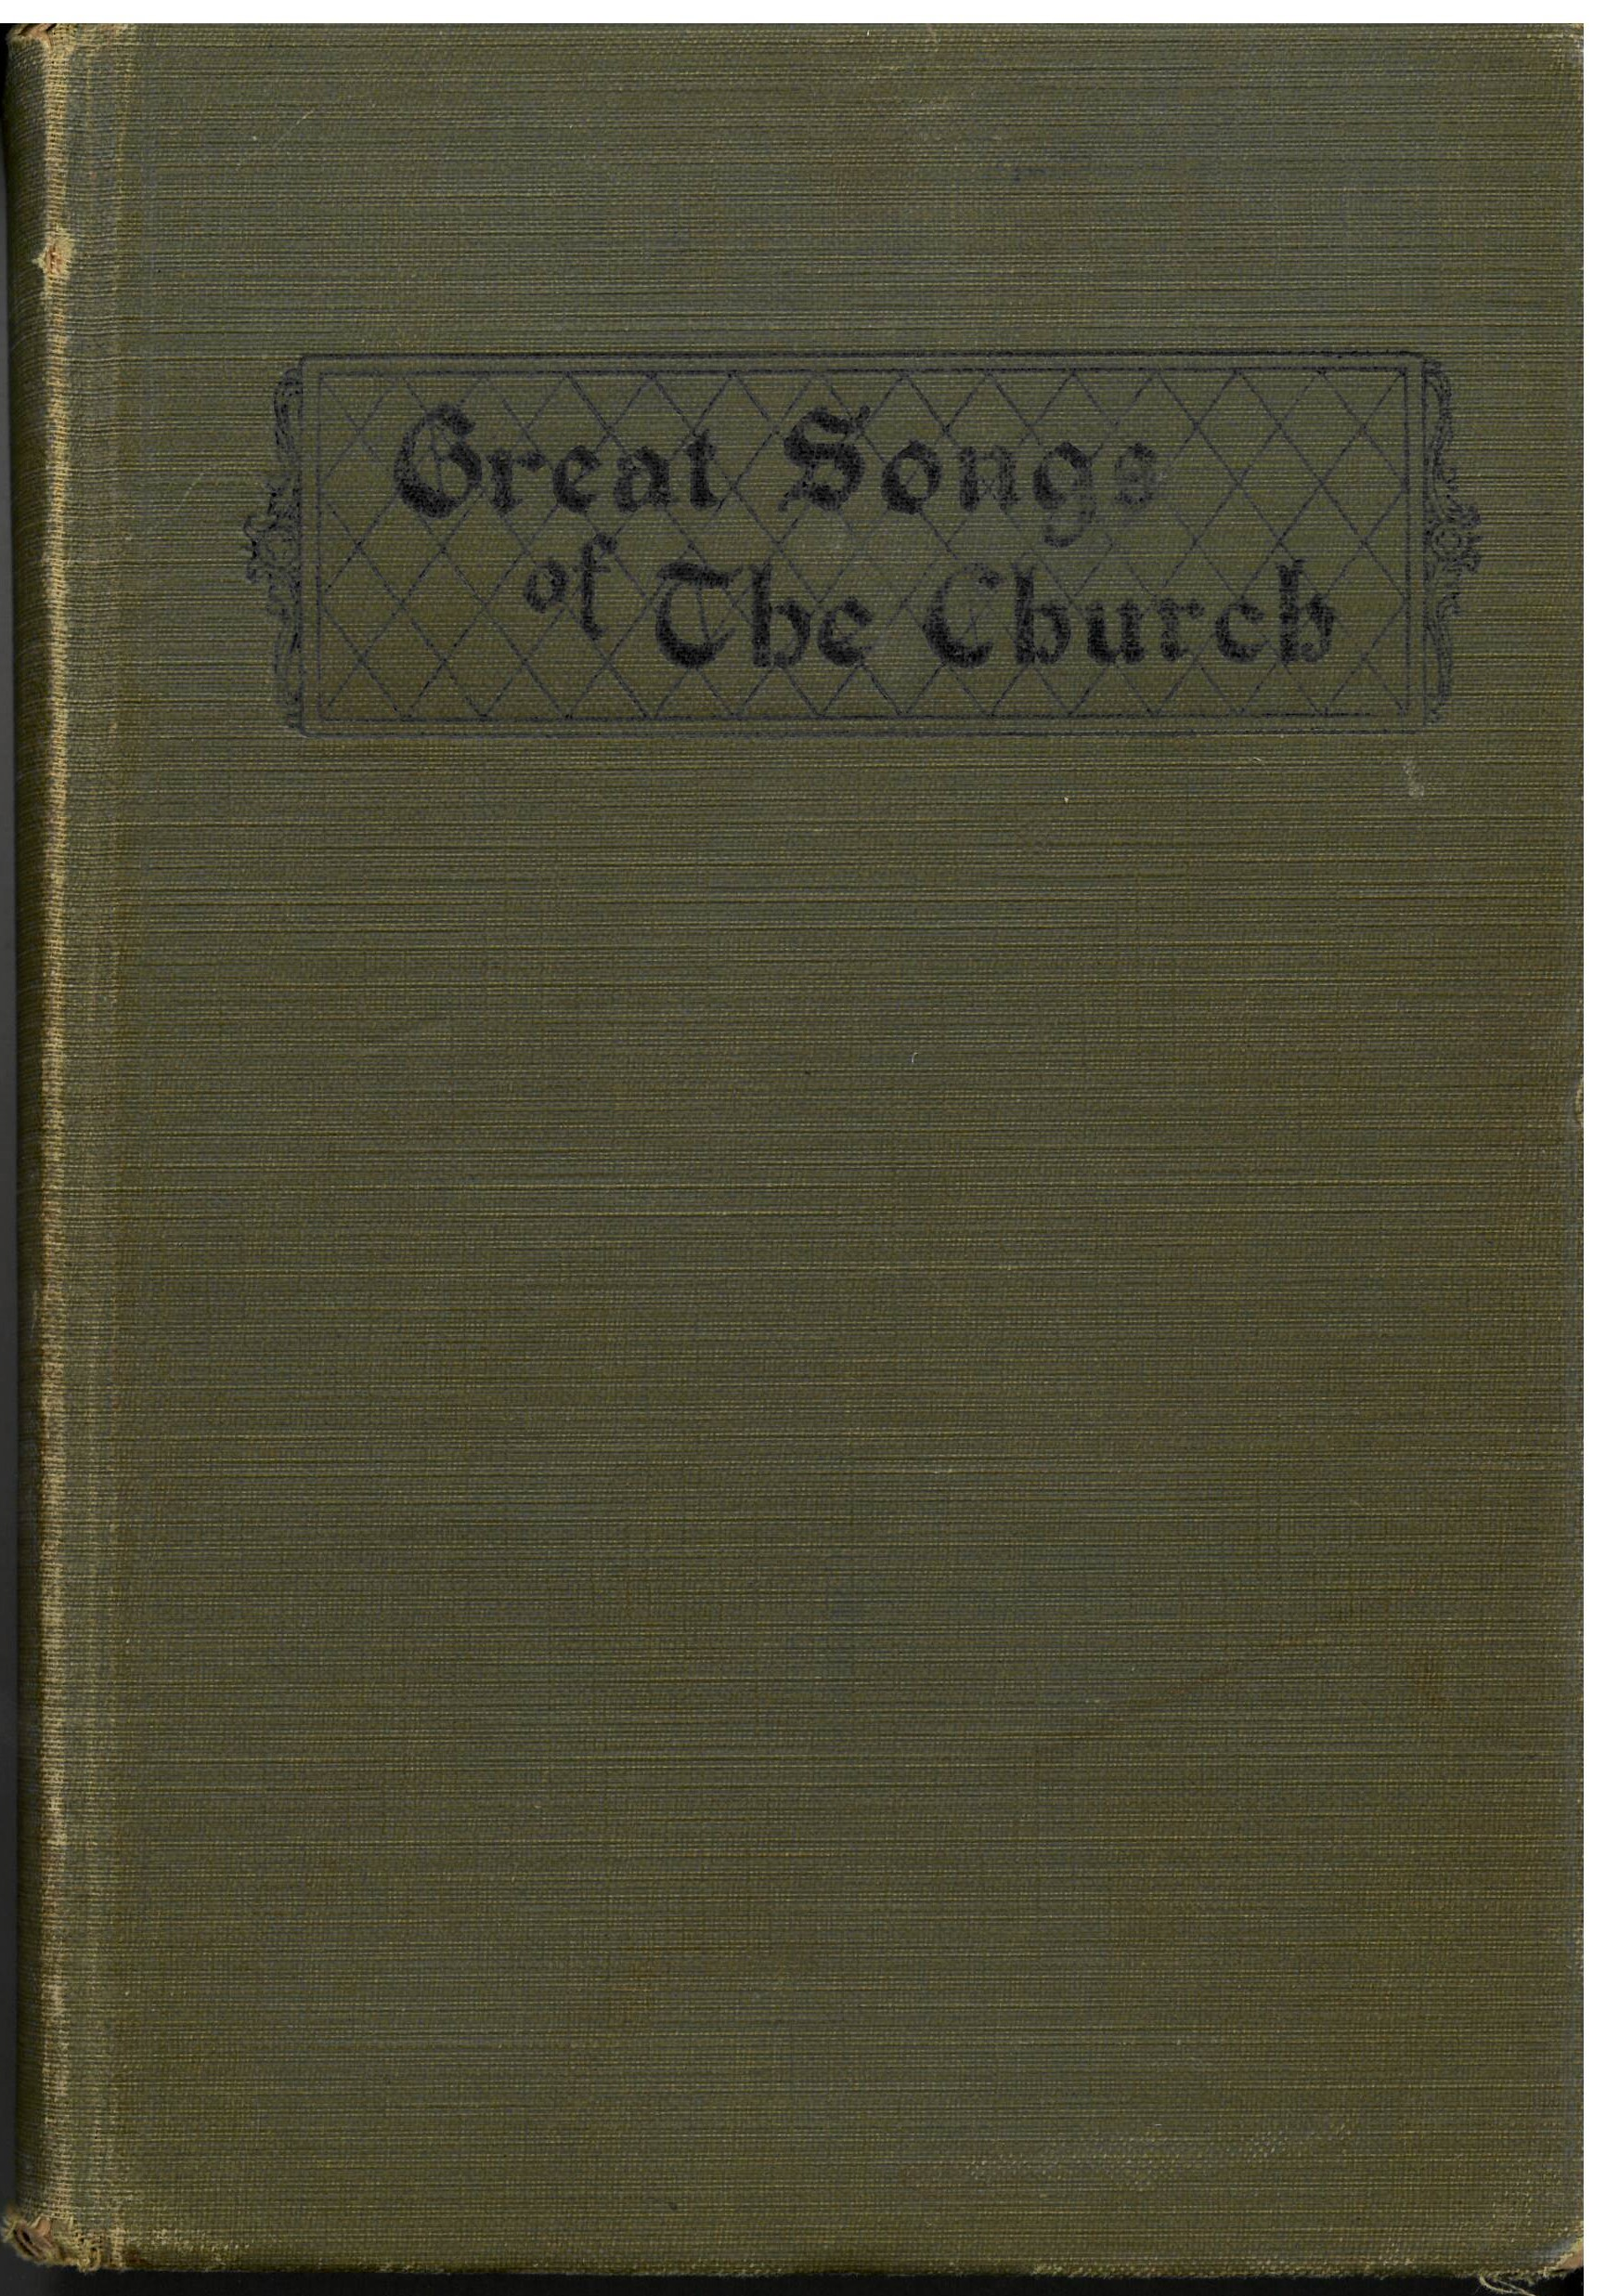 Great Songs of the Church. A Comprehensive Collection of Psalms, Hymns, and Spiritual Songs of First Rank, Suitable for all Services of the Church. Alphabetically Arranged. E. L. Jorgenson, Compiler. First edition. Word and Work: Louisville, 1921. Green cover with round notes.